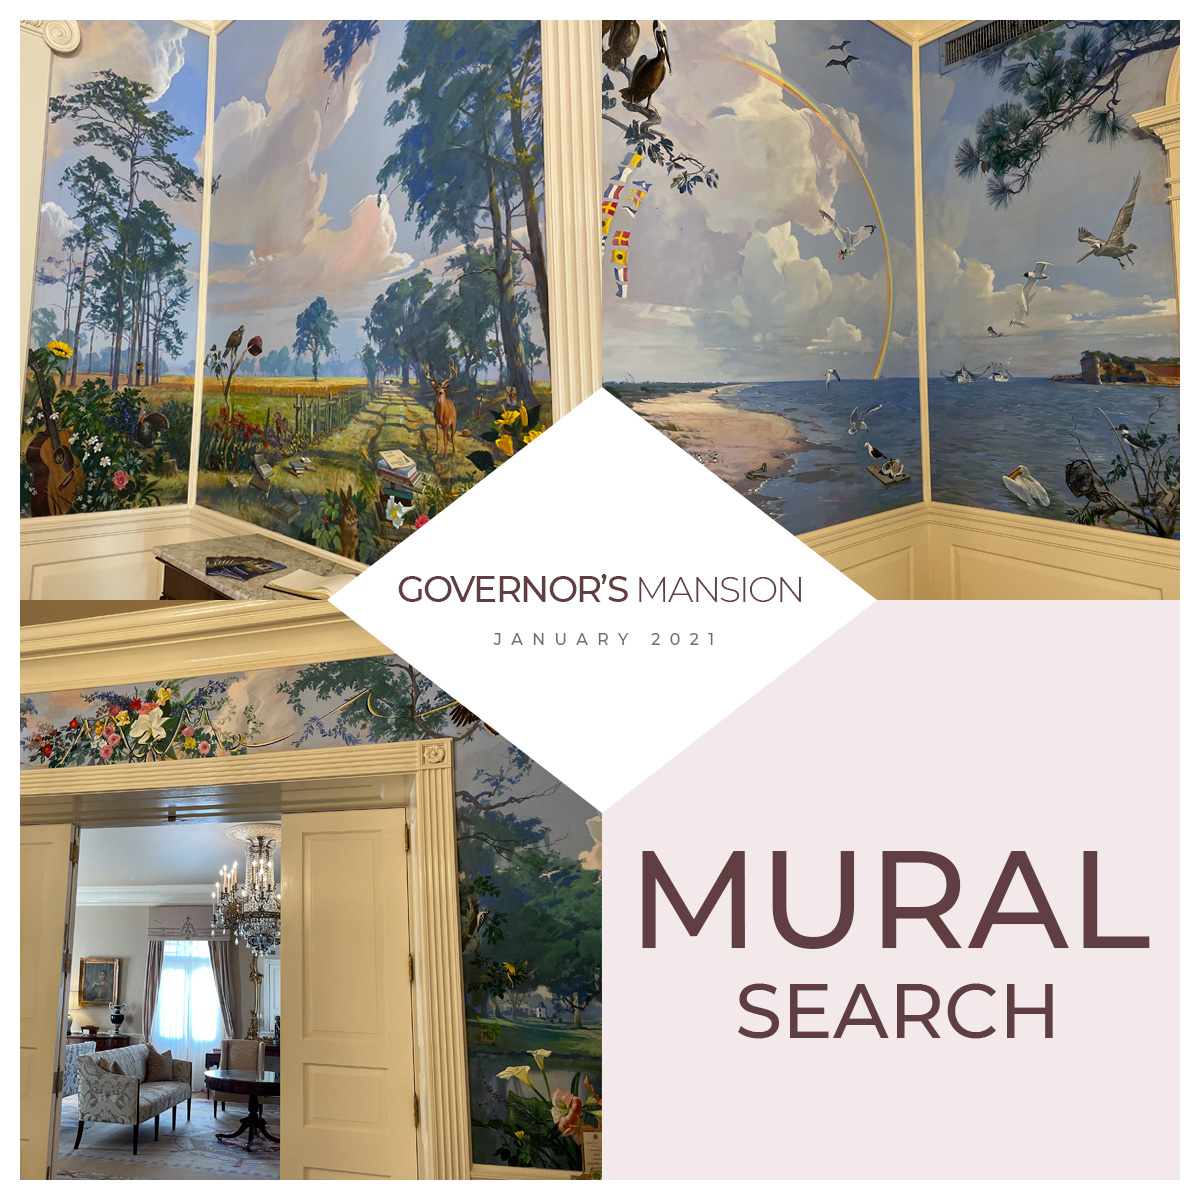 The Governor's Mansion Mural Search